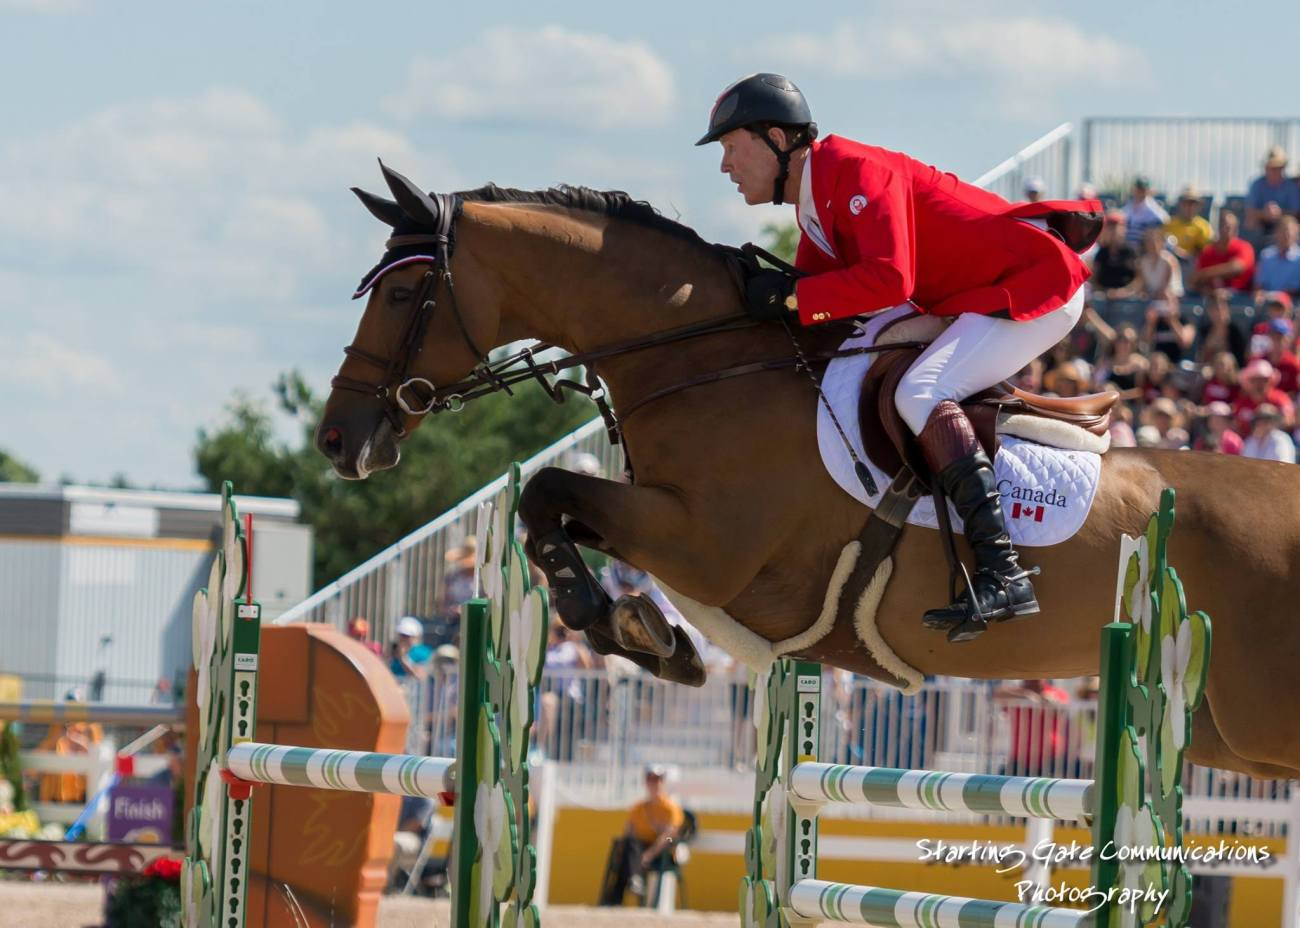 2019.05.01.99.99 News Ian Millar Announces Retirement Starting Gate